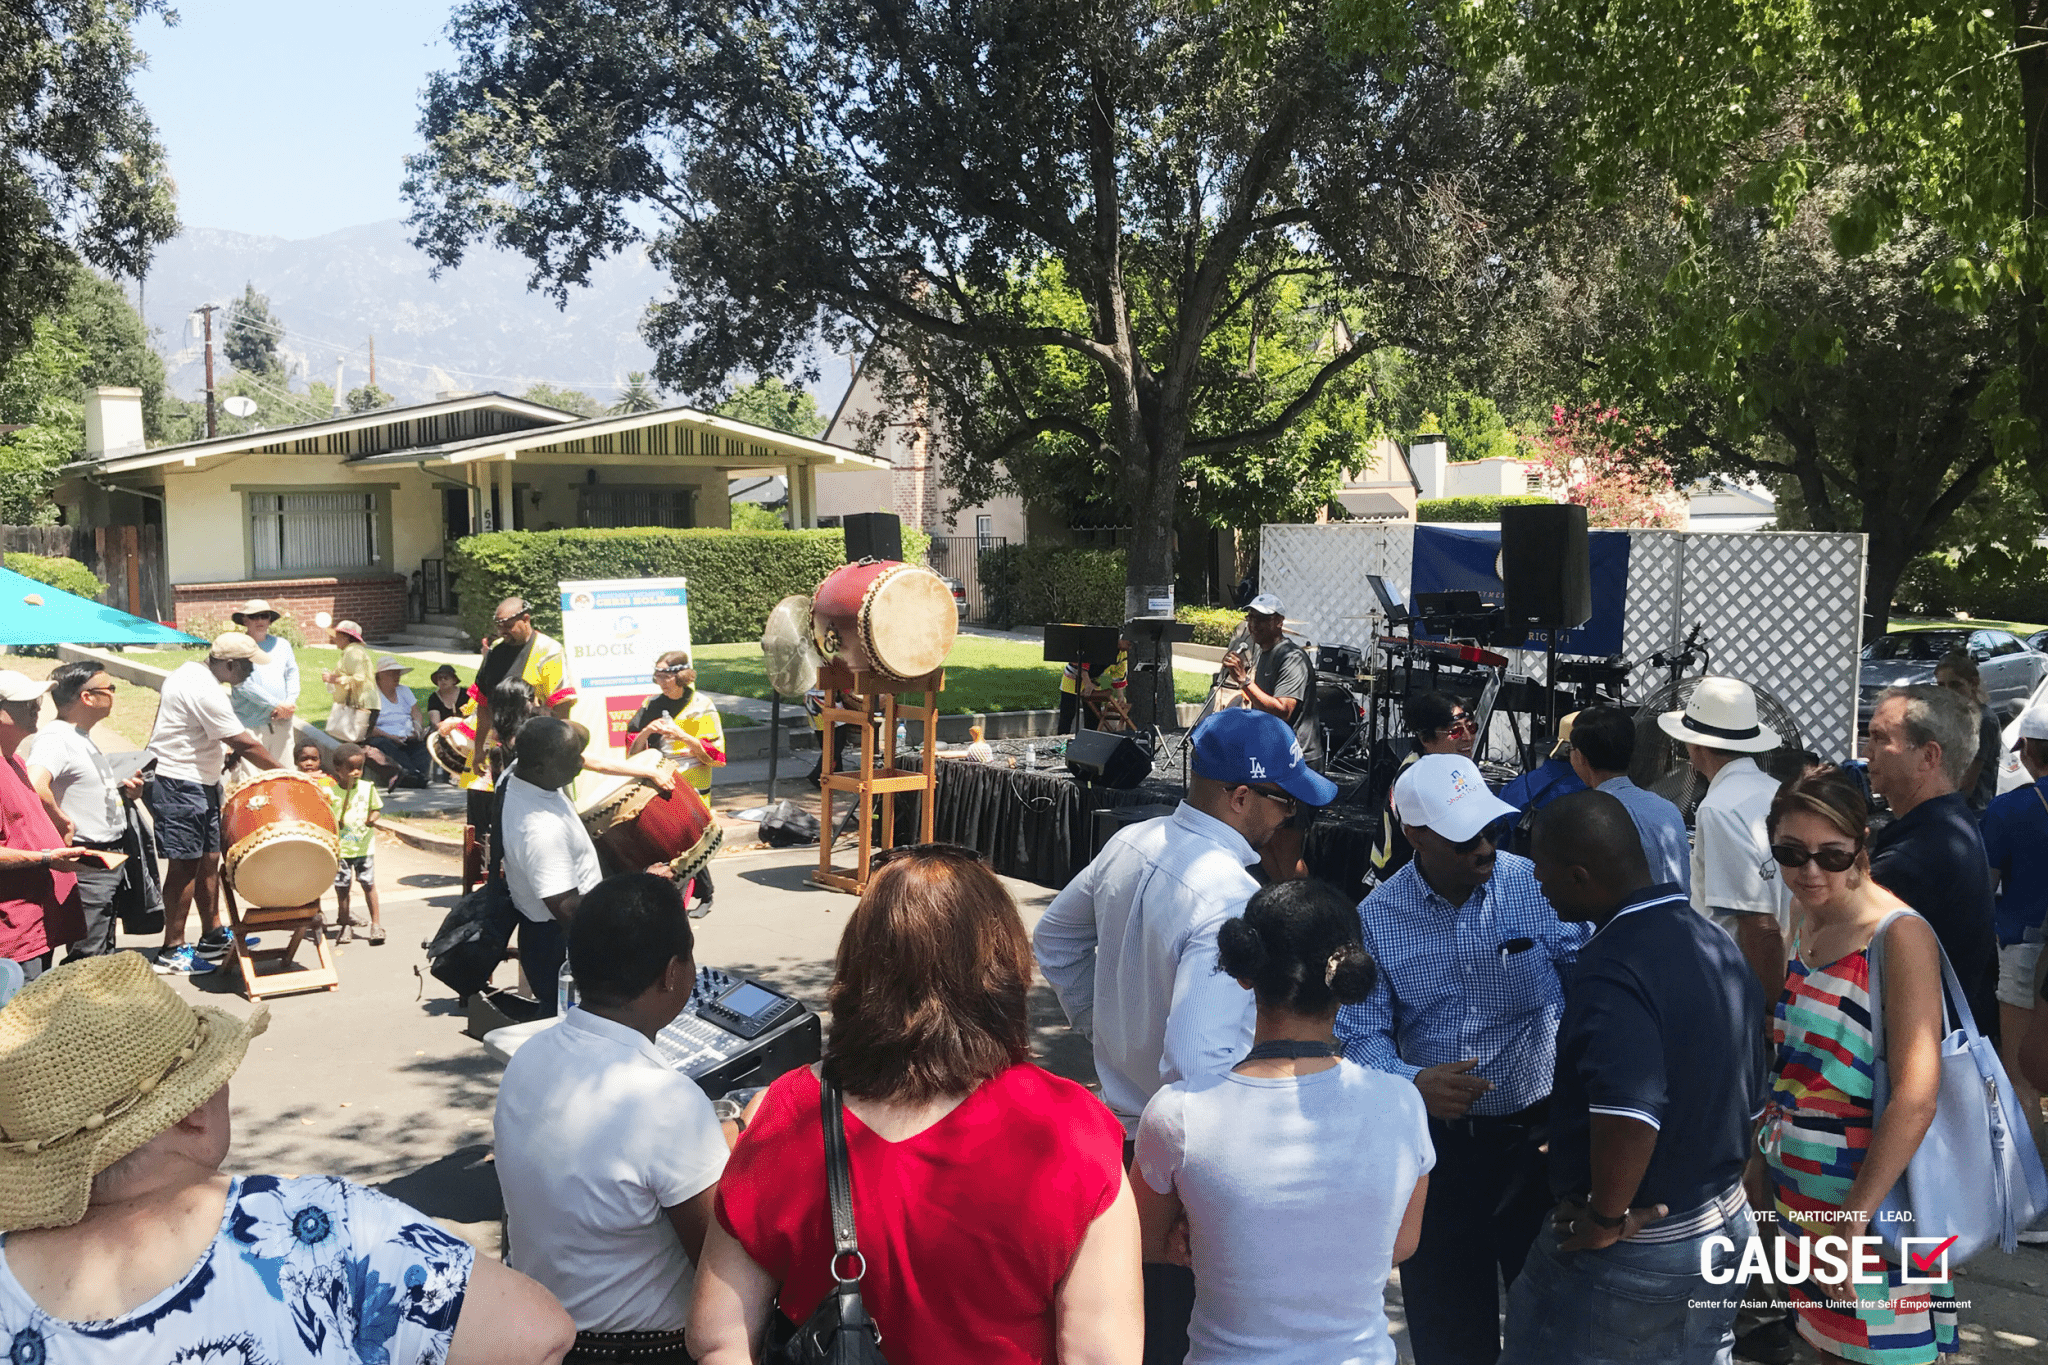 Assemblymember Holden's Annual Block Party and Community Resource Fair